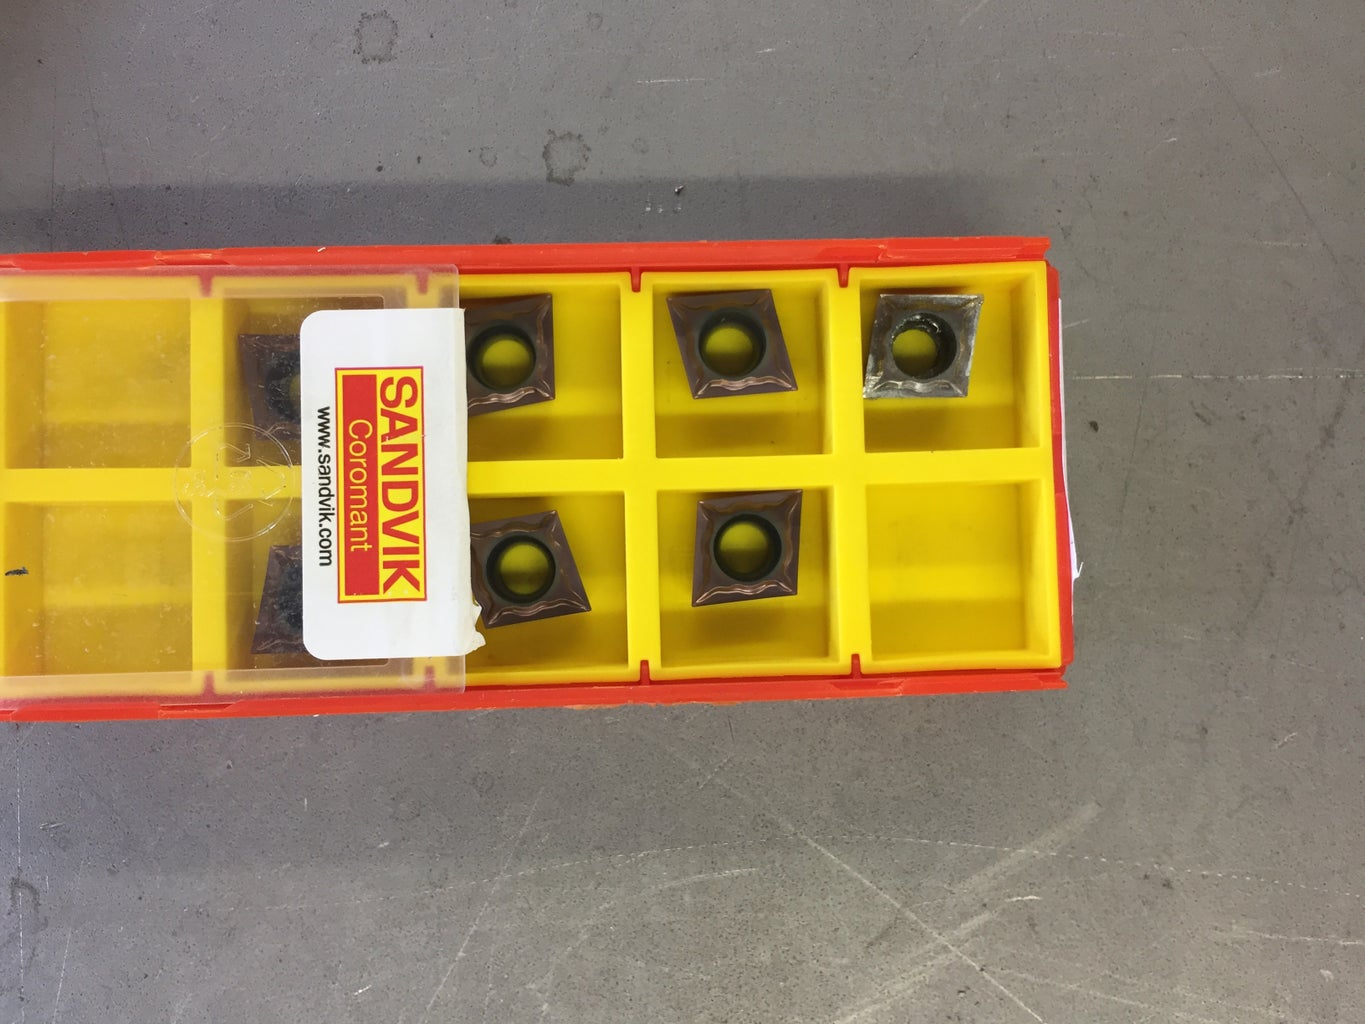 Different Inserts for Each Toolholder